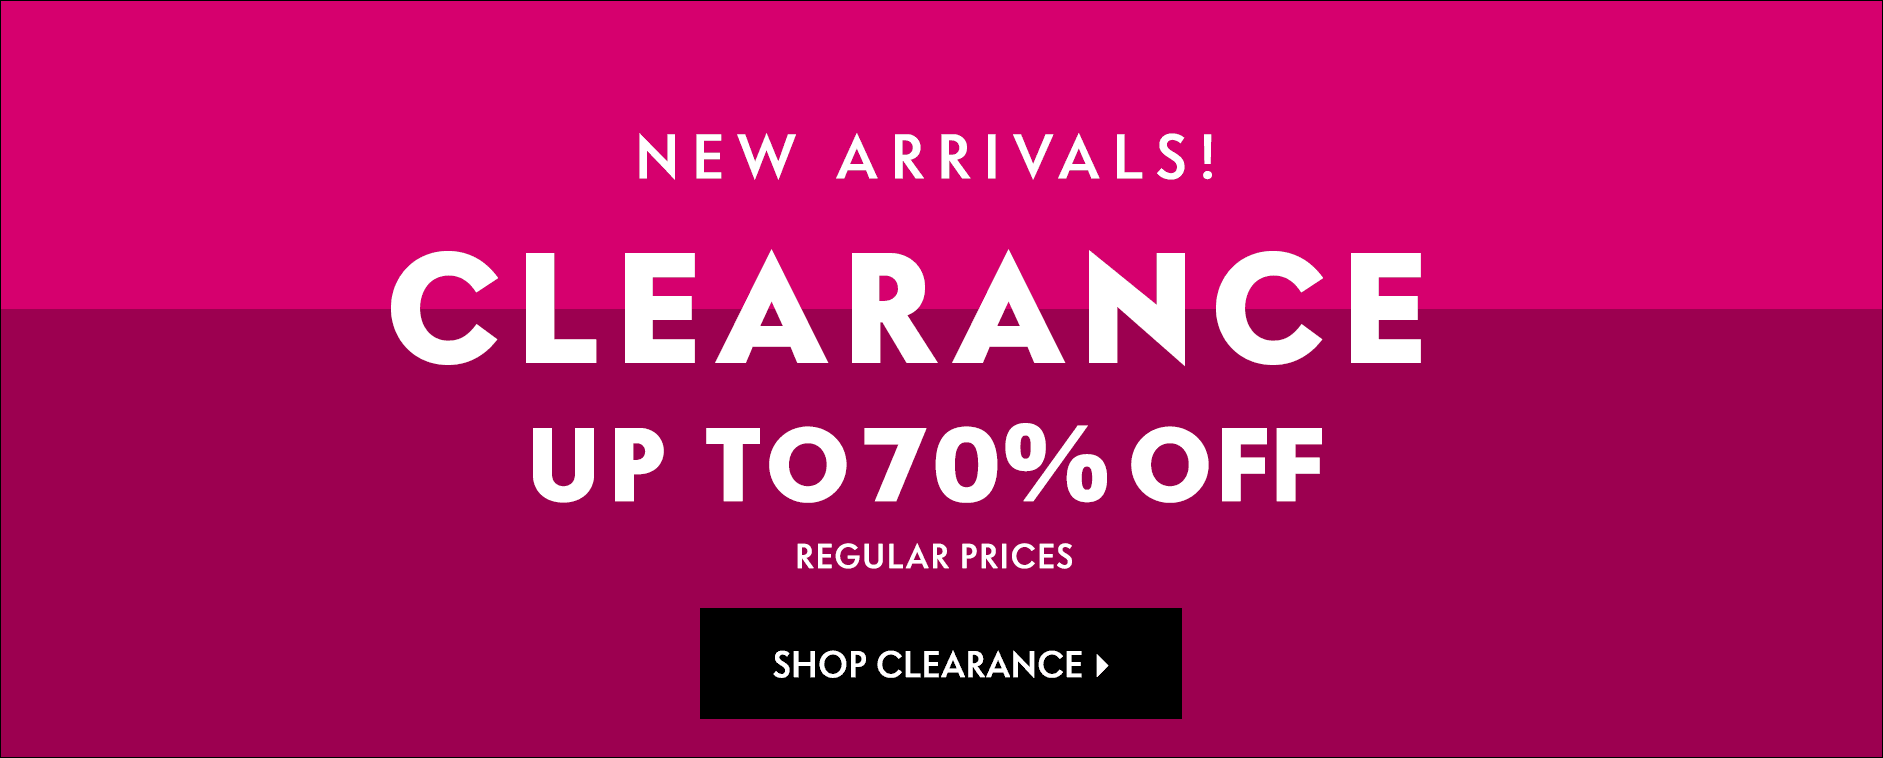 New Arrivals! Clearance - Up to 70% off regular prices